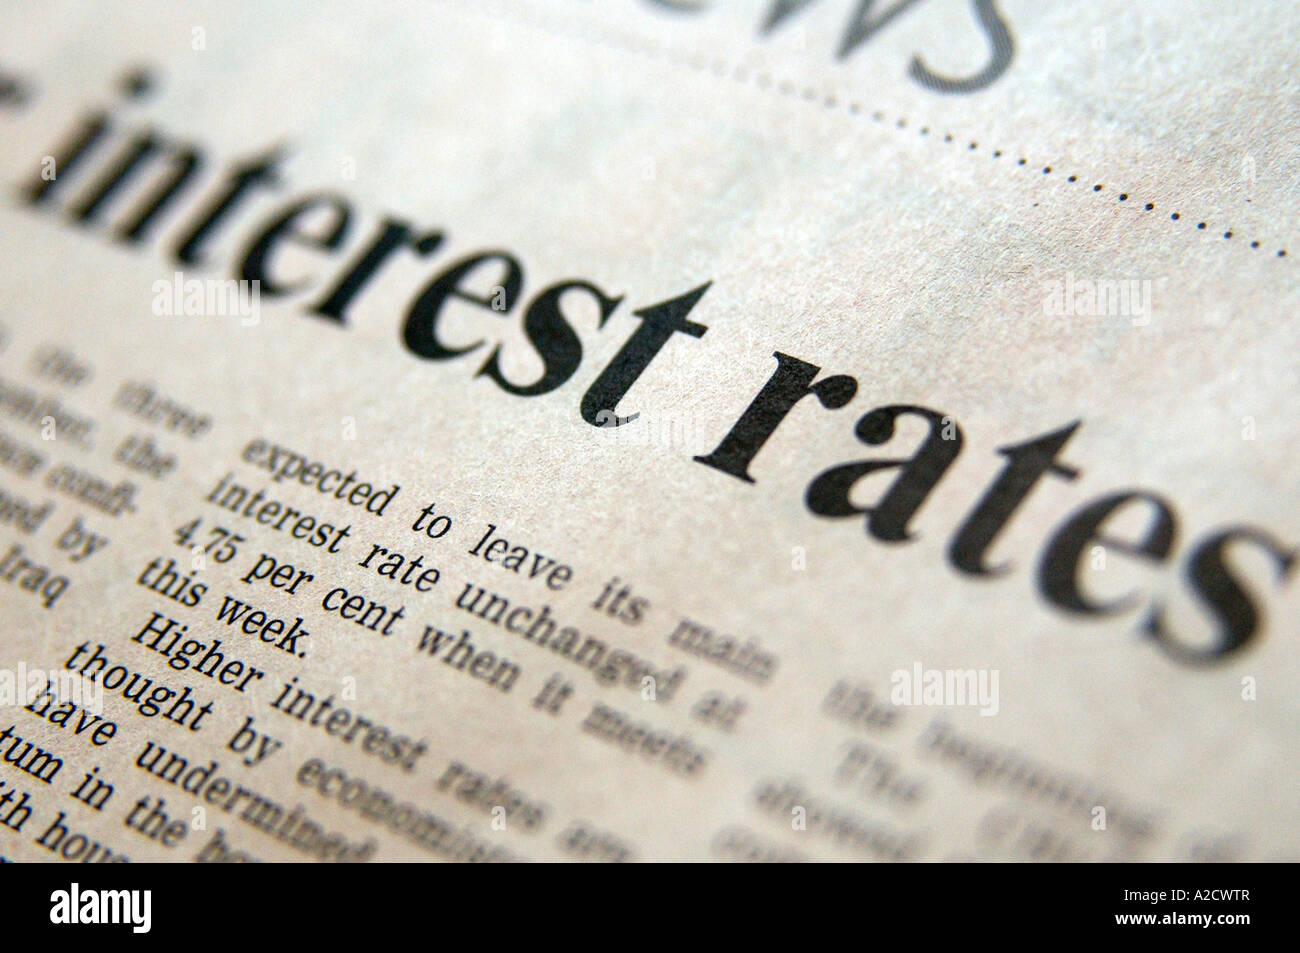 Royalty free photograph of Interest rates business headline in UK financial times - Stock Image